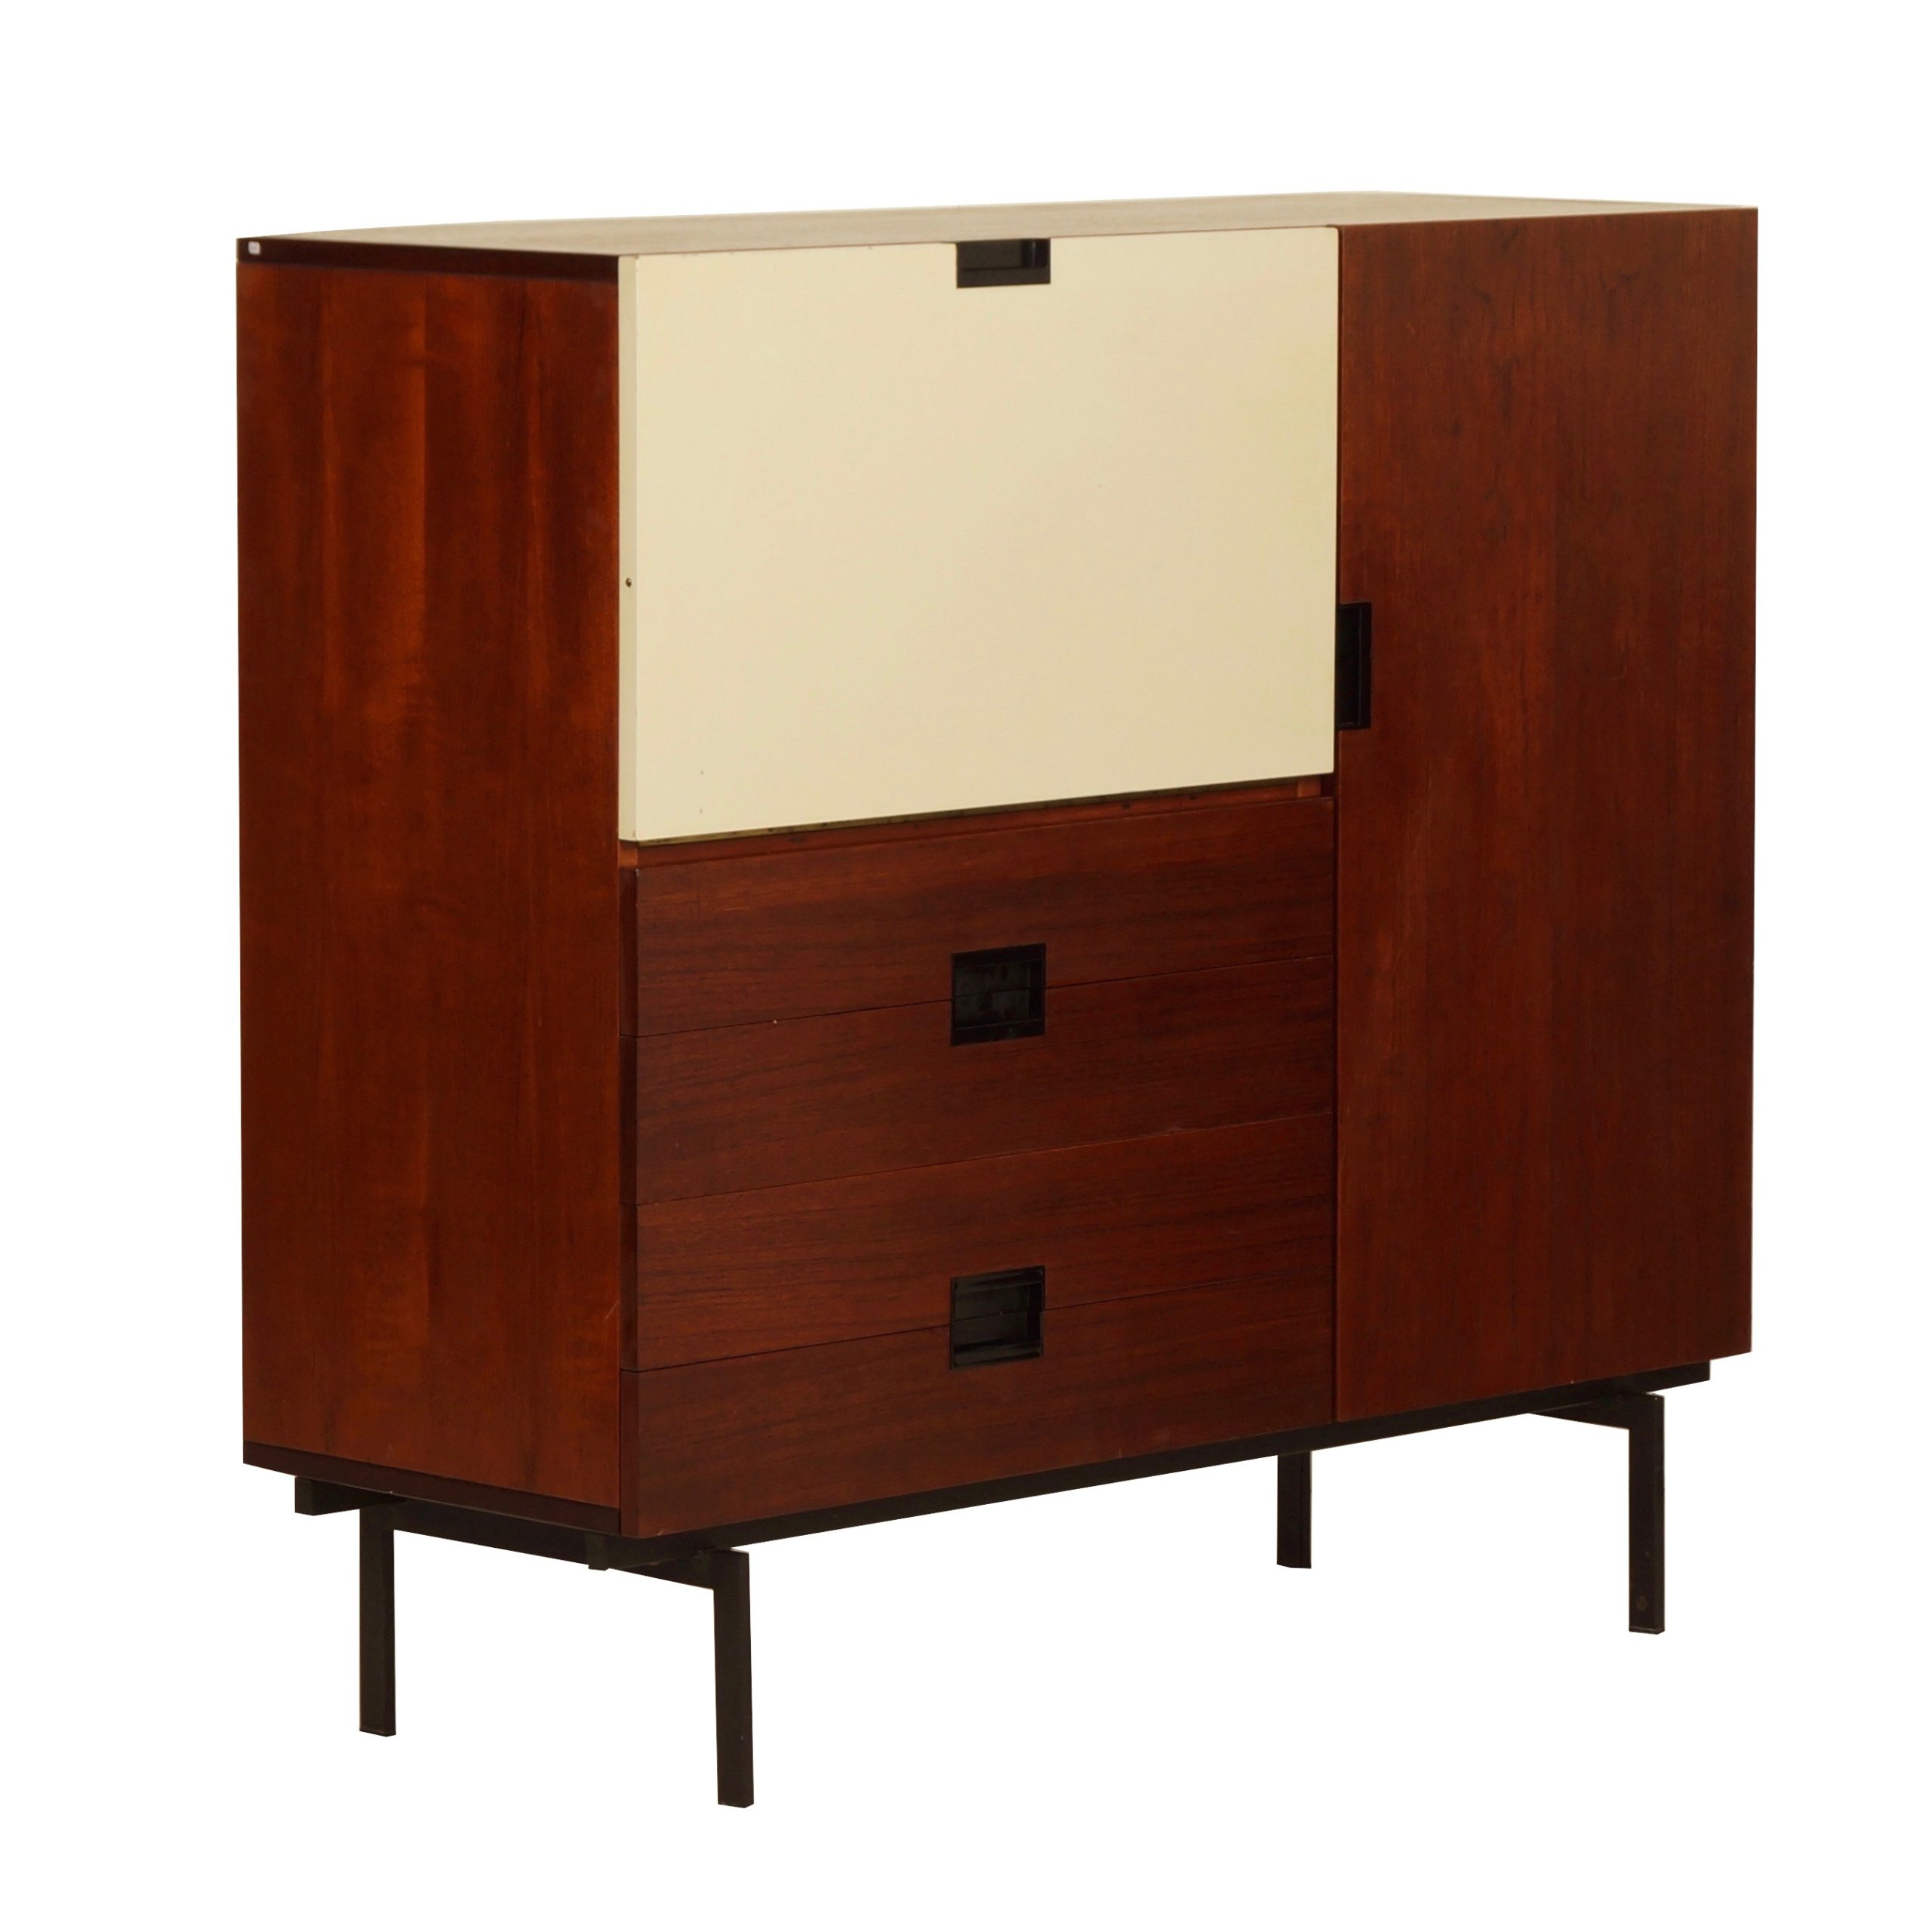 Cu06 Cabinet By Cees Braakman For Pastoe 1958 Vintage